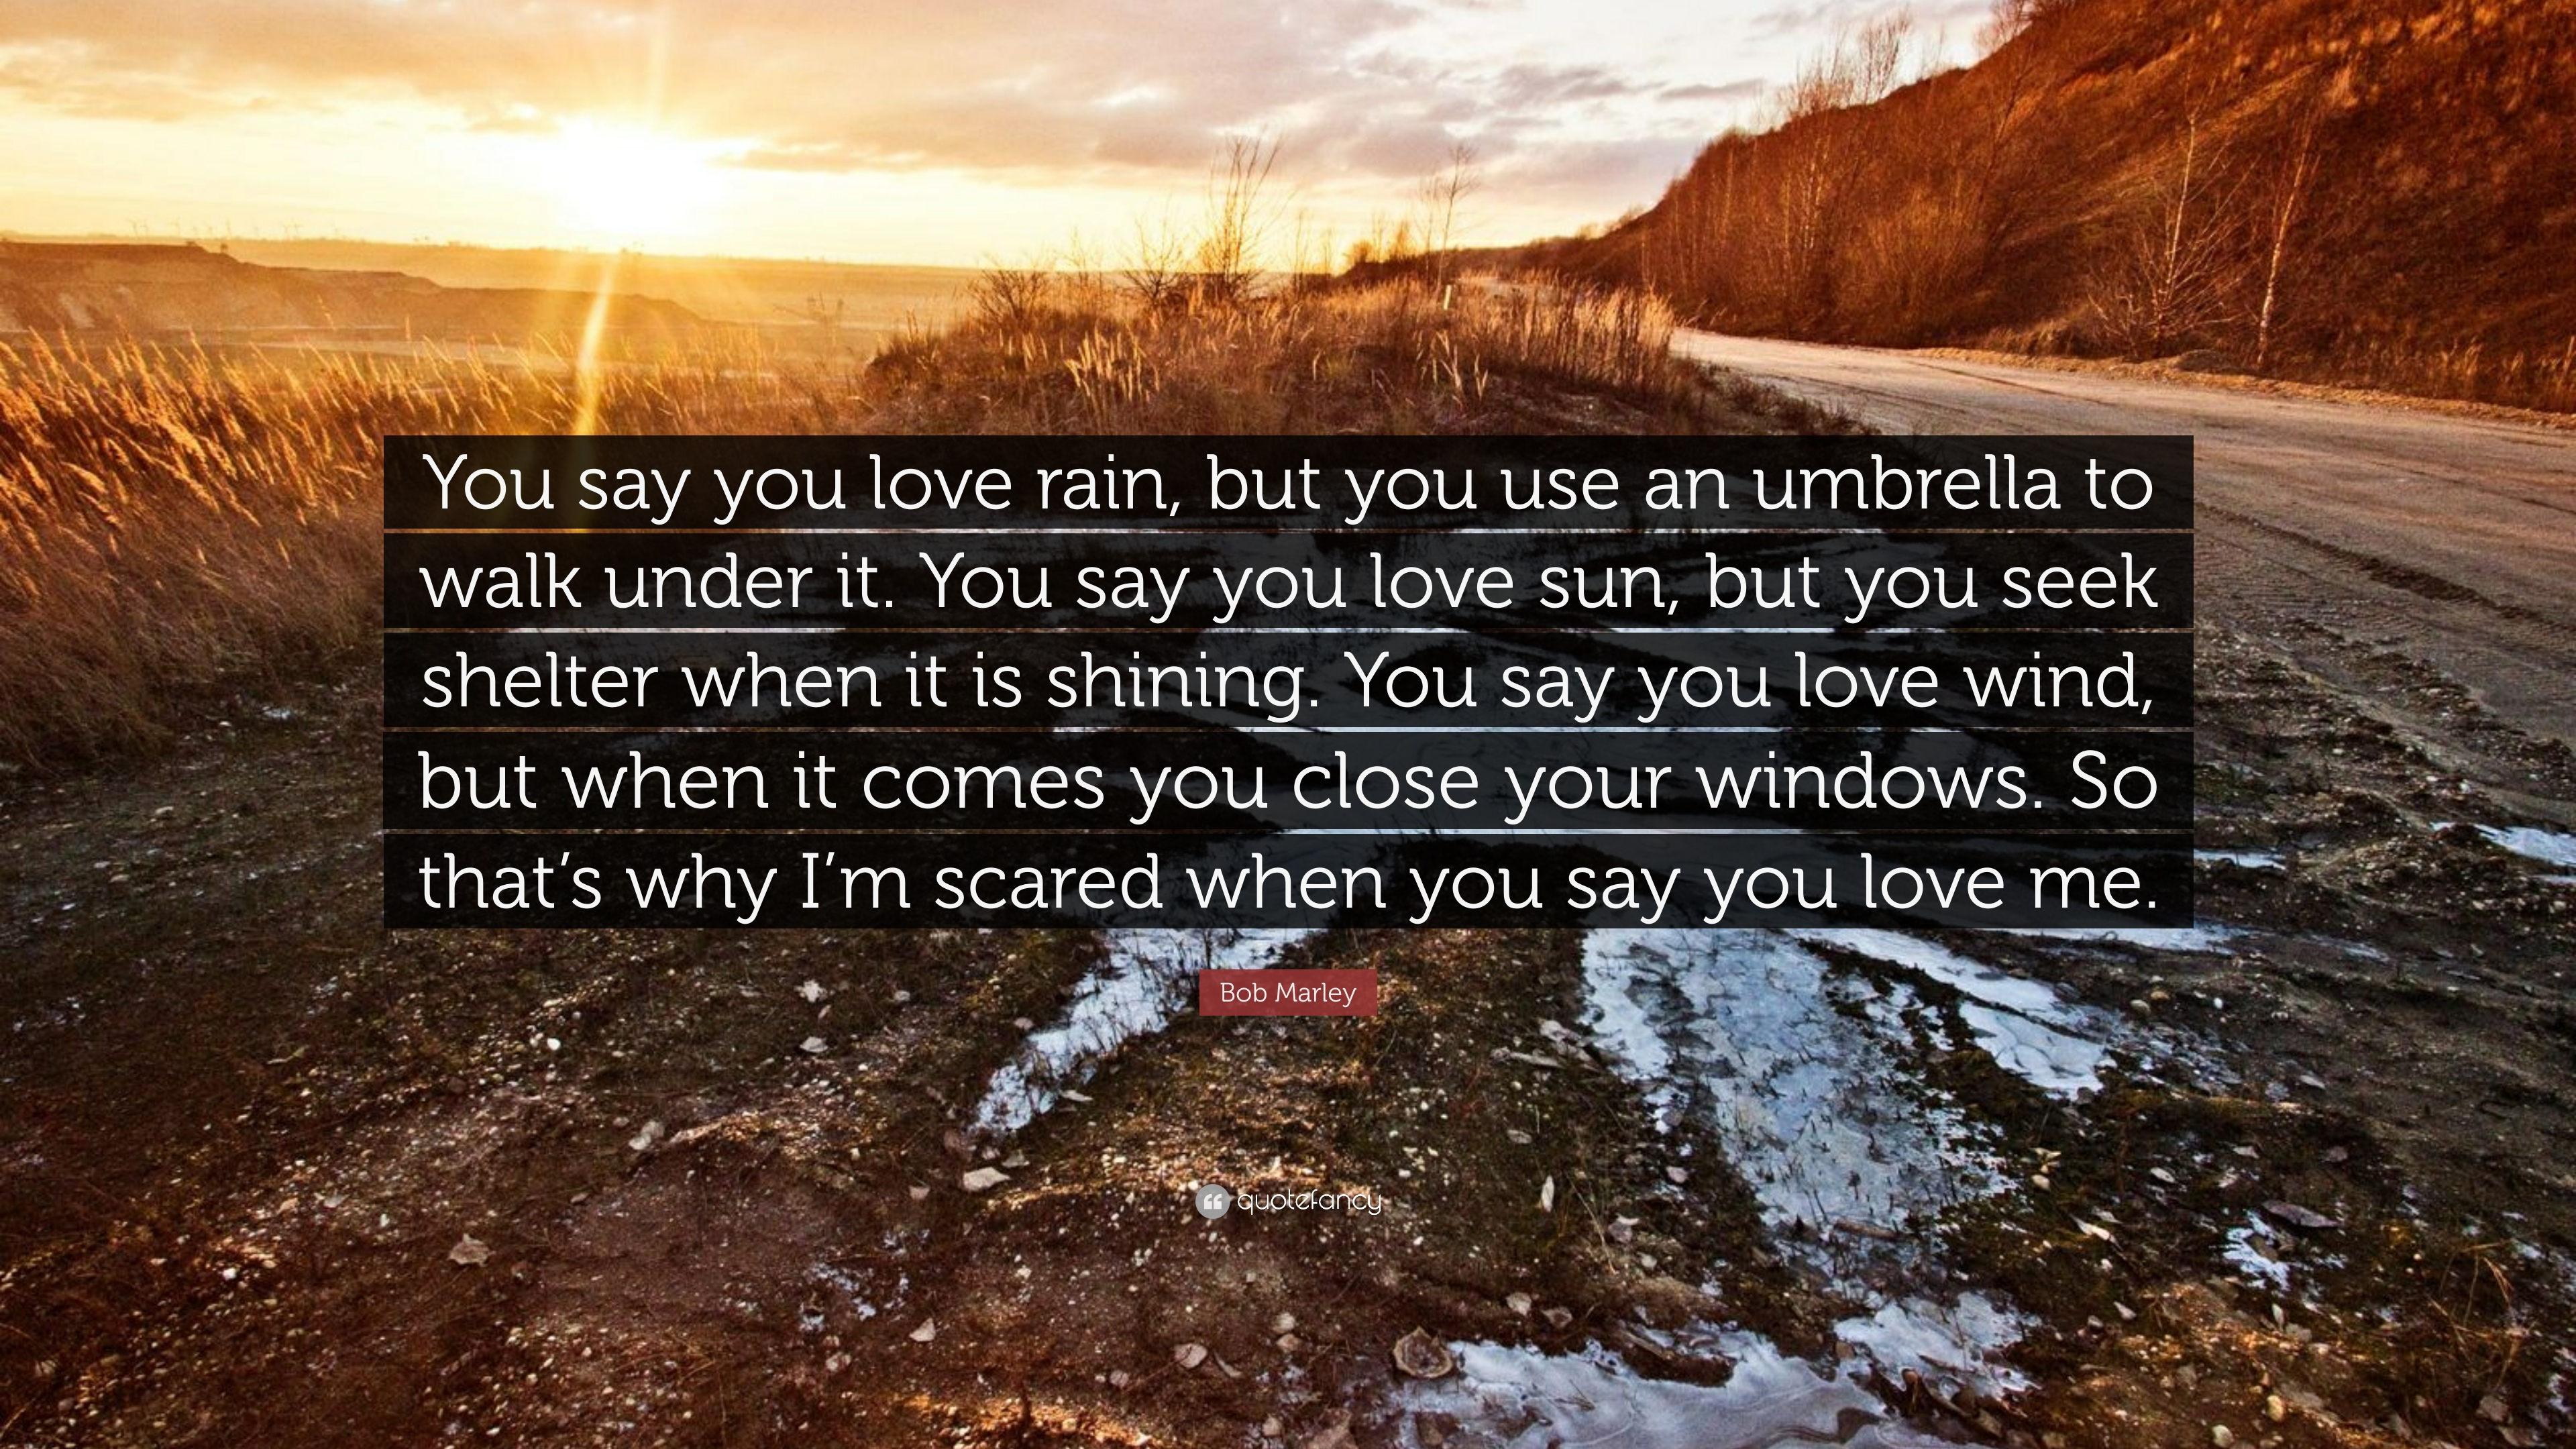 Good Bob Marley Quote: U201cYou Say You Love Rain, But You Use An Umbrella Pictures